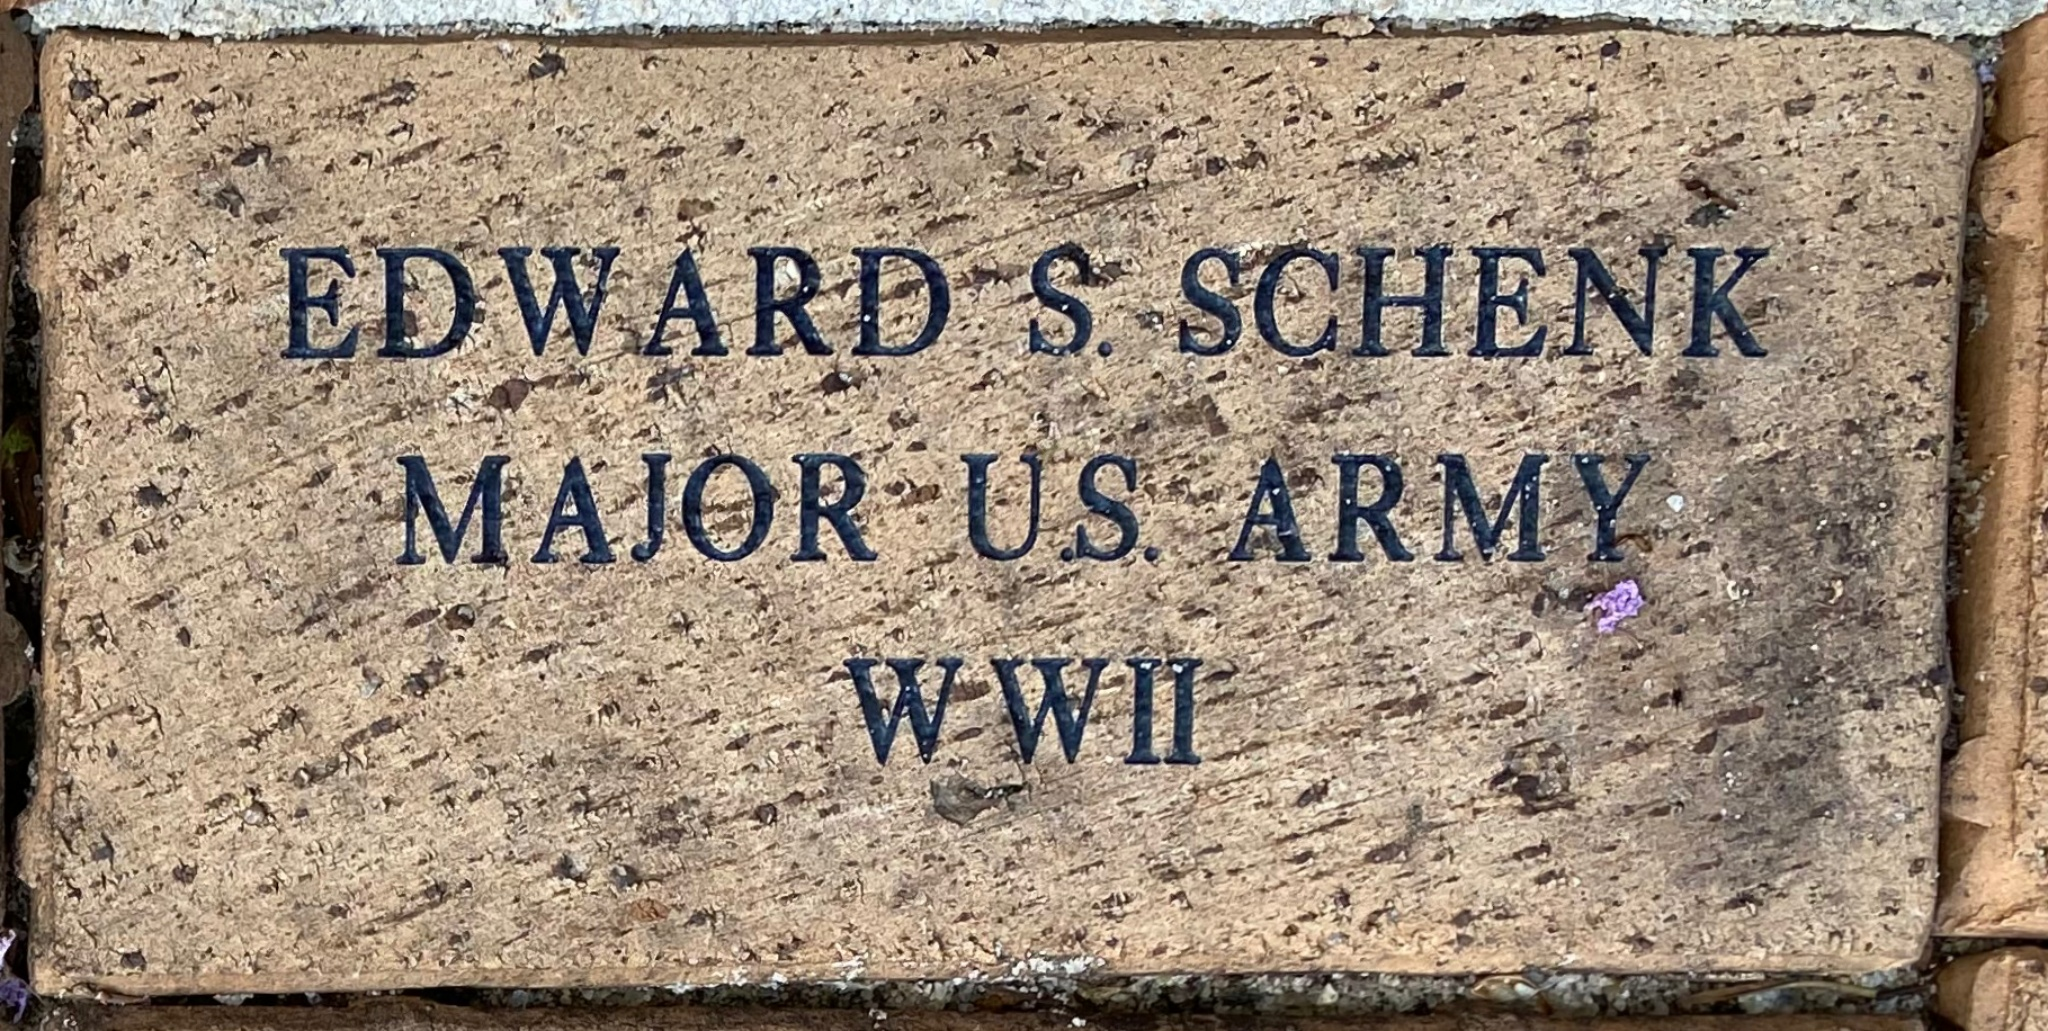 EDWARD S. SCHENK MAJOR U.S. ARMY WWII